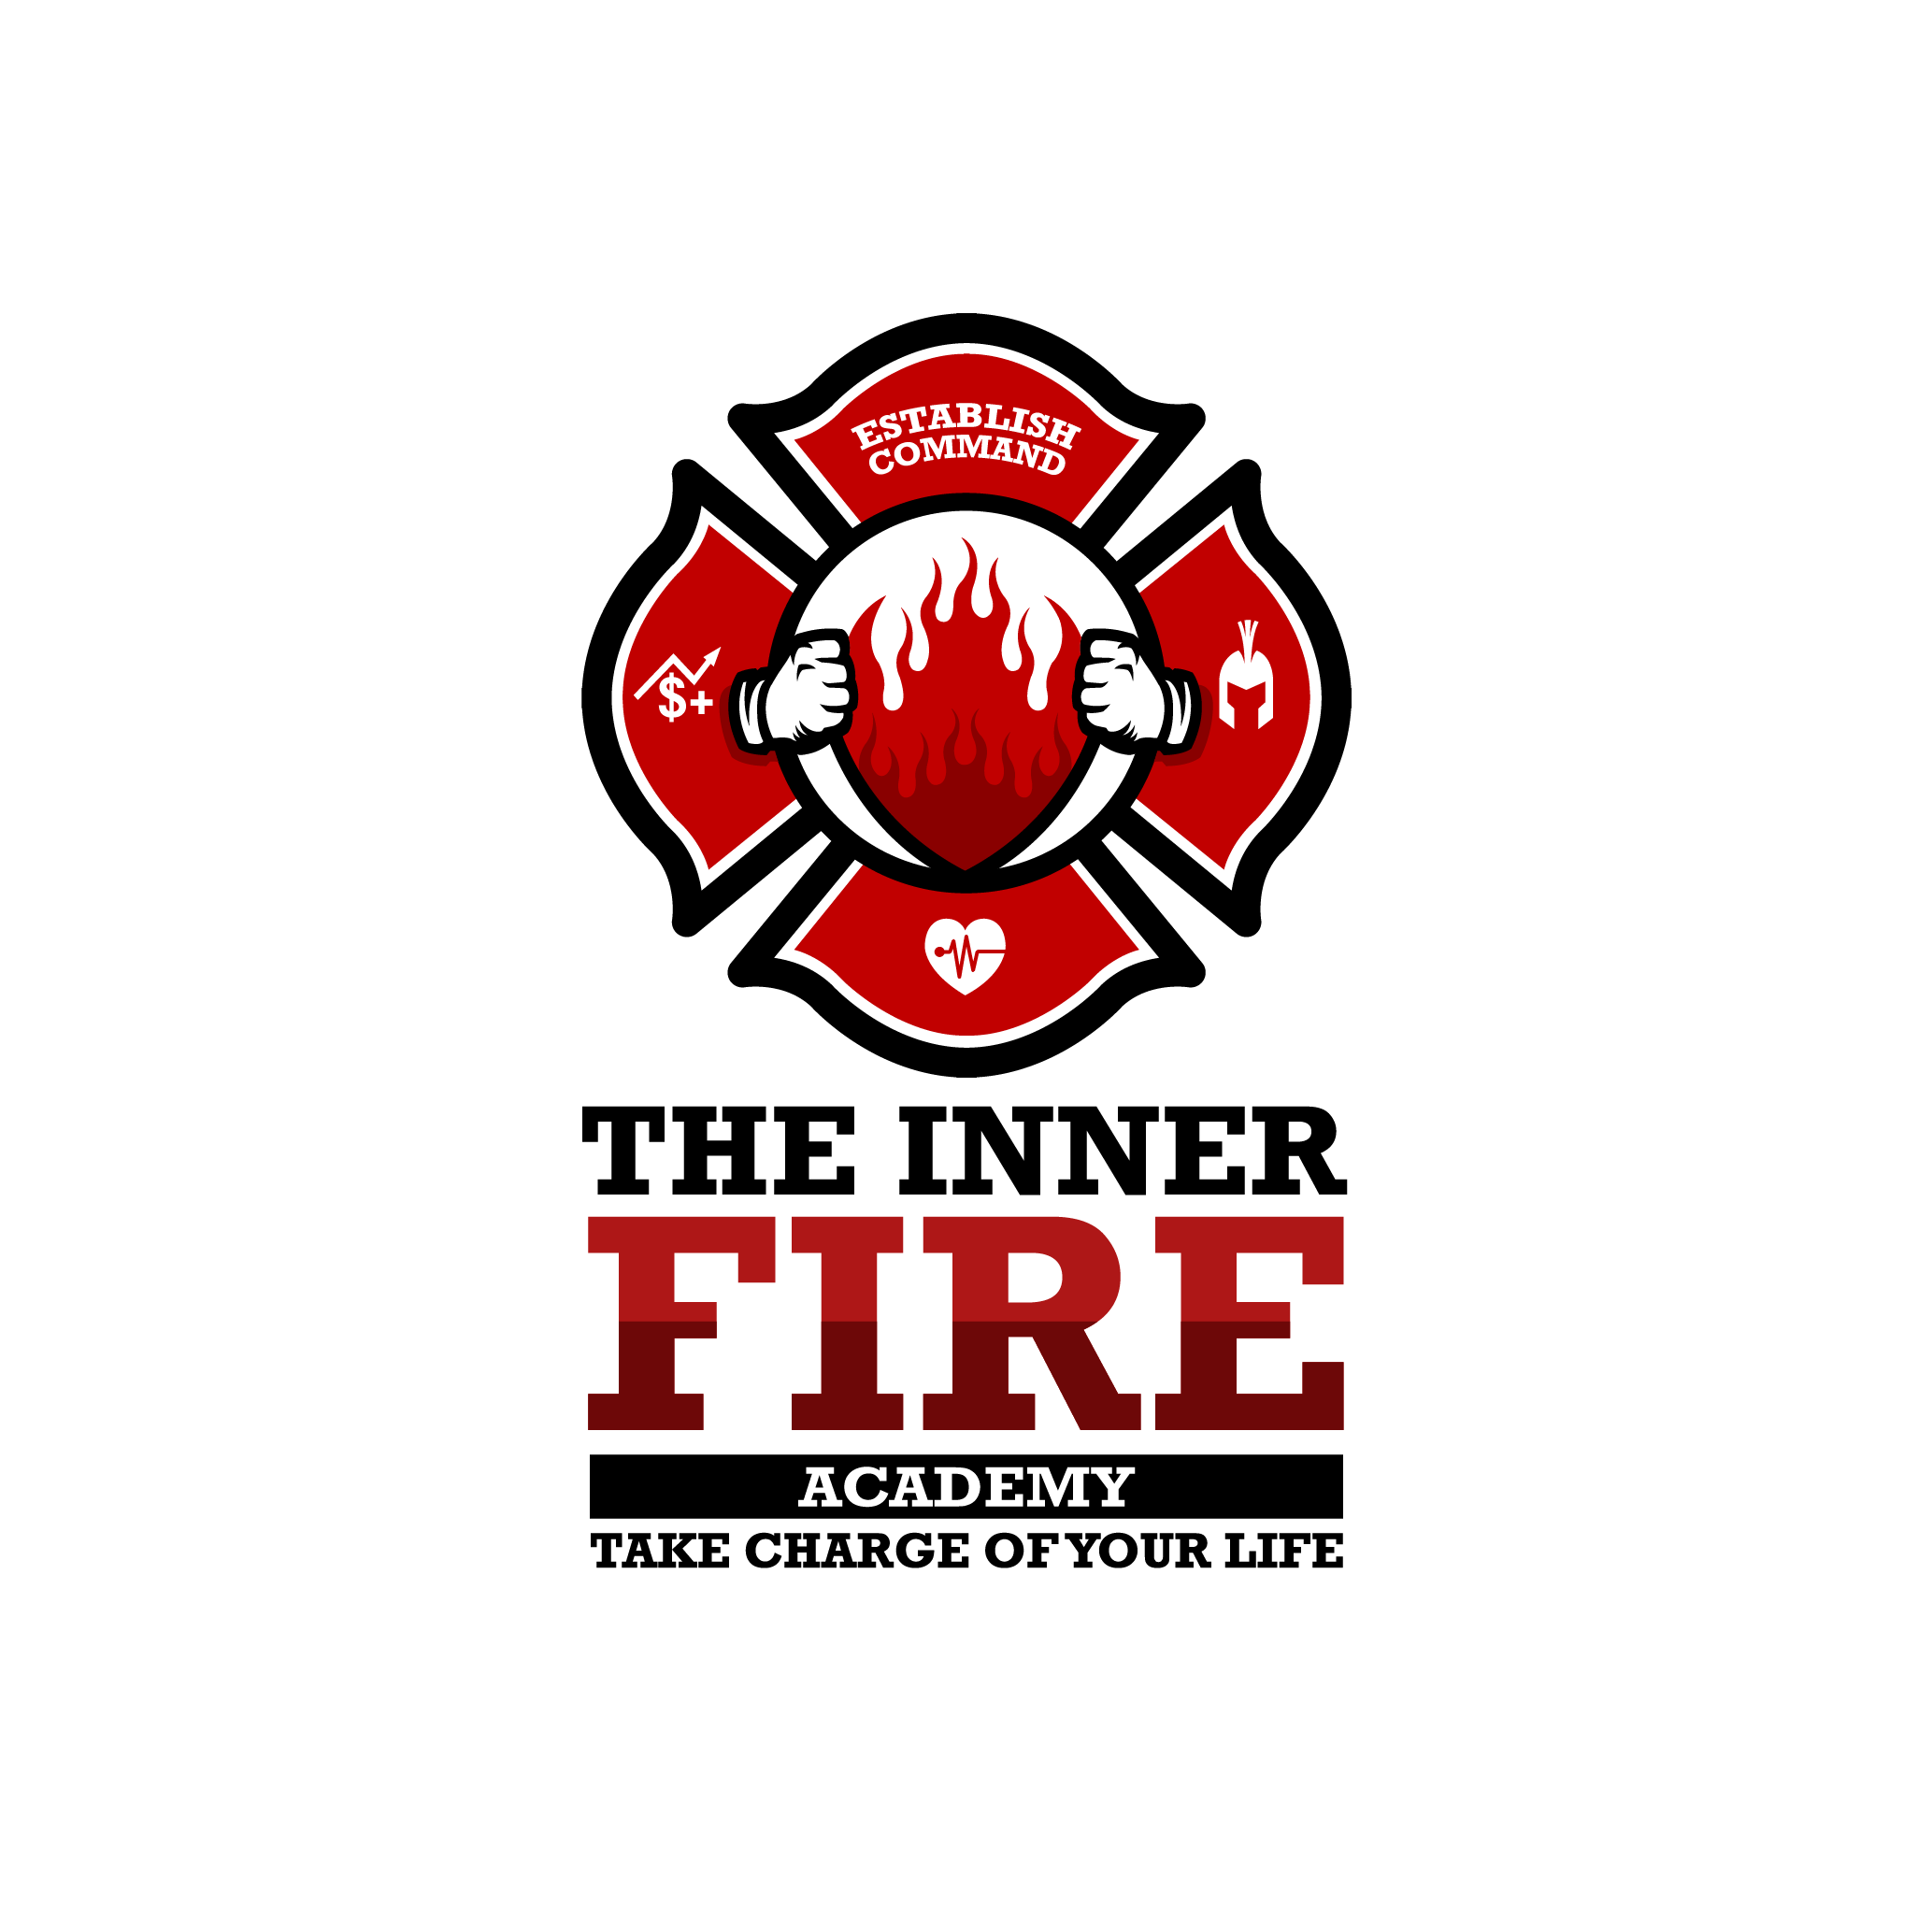 Design a powerful, eye-catching logo for a firefighter that inspires others!